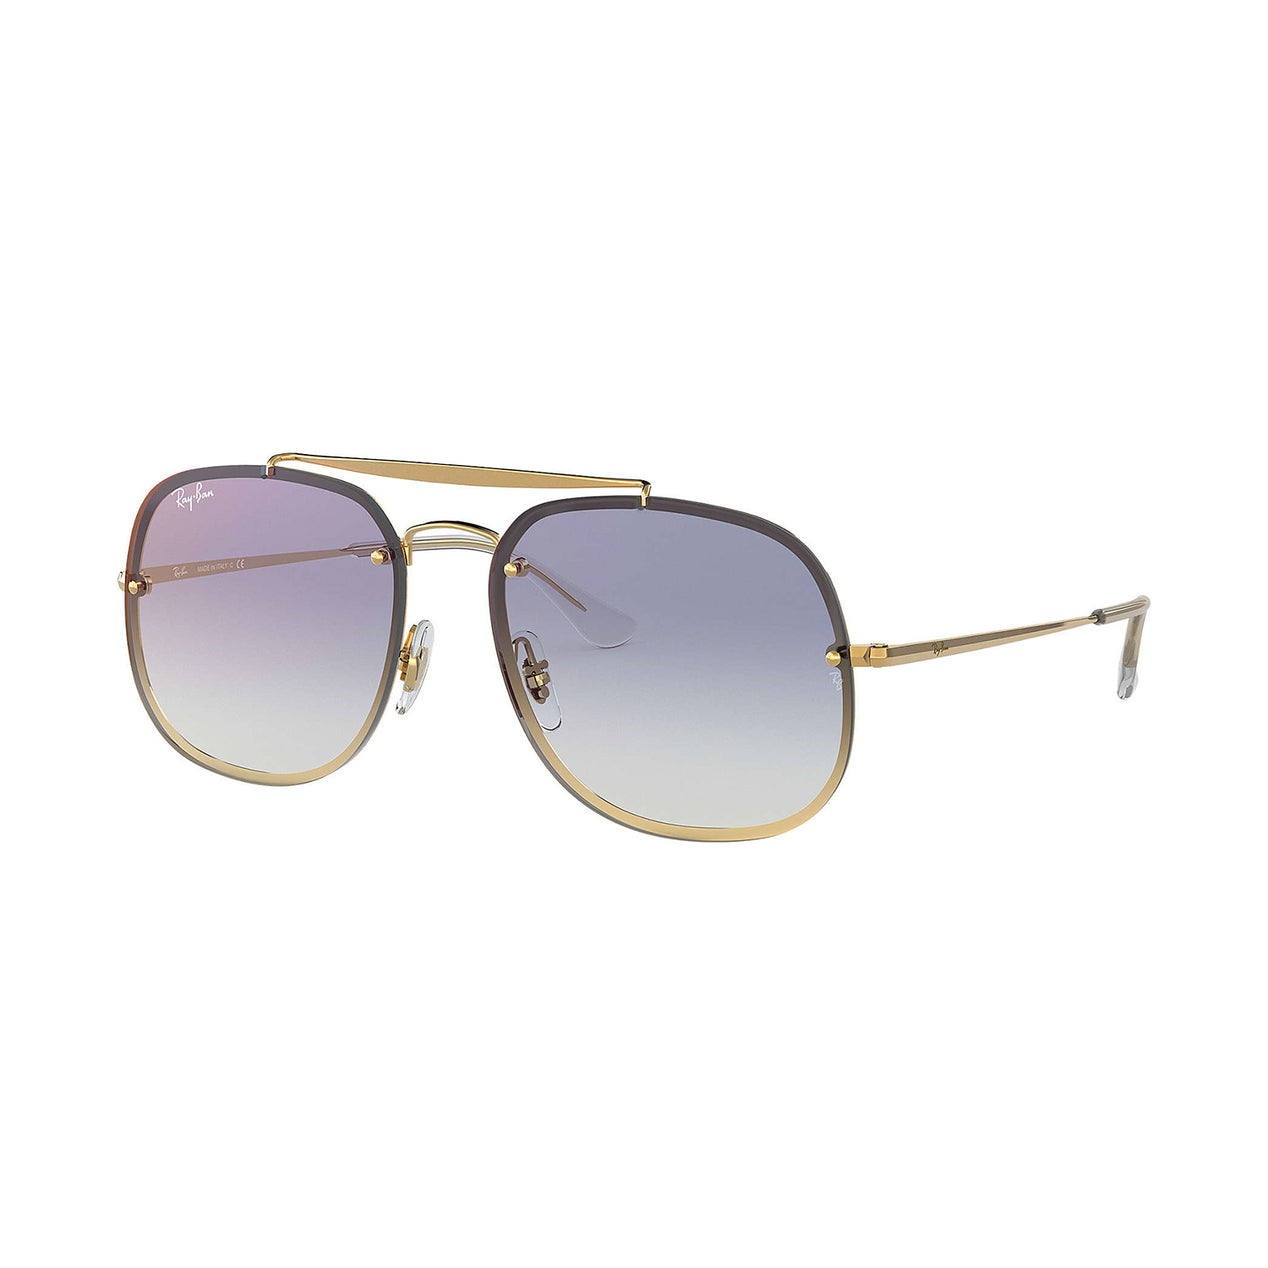 11708ff1aa4 Ray Ban Blaze General - Gold Frame - Blue Gradient Mirror Lens ...